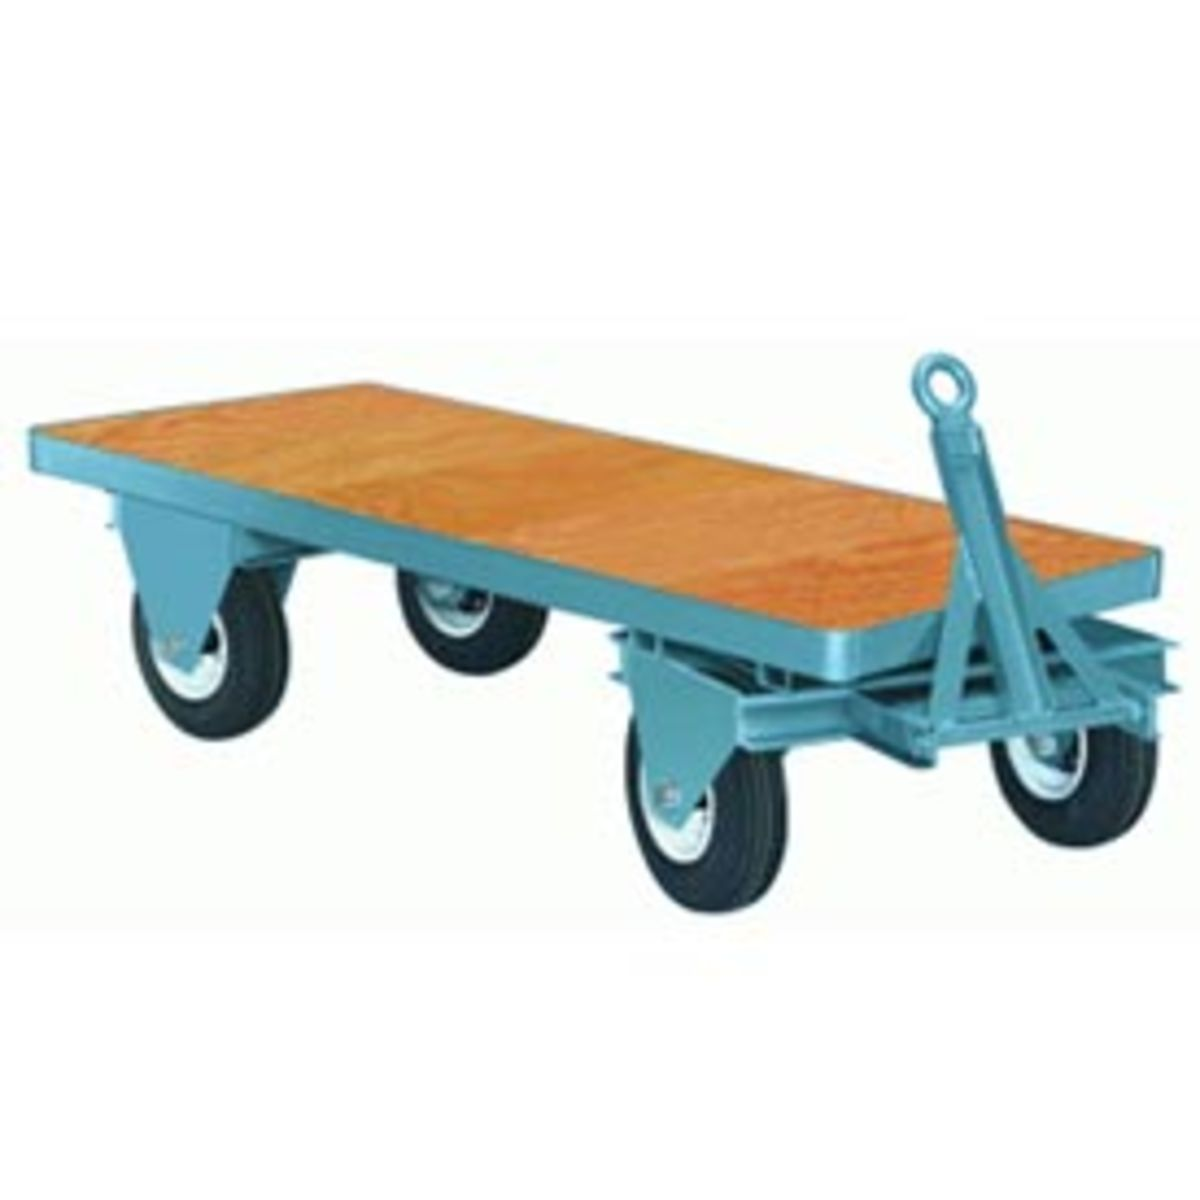 """This 36"""" x 72"""" fifth-wheel-steer trailer features a deck of 1"""" select hardwood with 16 x 4.80-8 6-ply Pneumatic Tires. Trailer designed for power towing. Tapered roller bearings with lube fittings rotate on 1"""" diameter axles."""